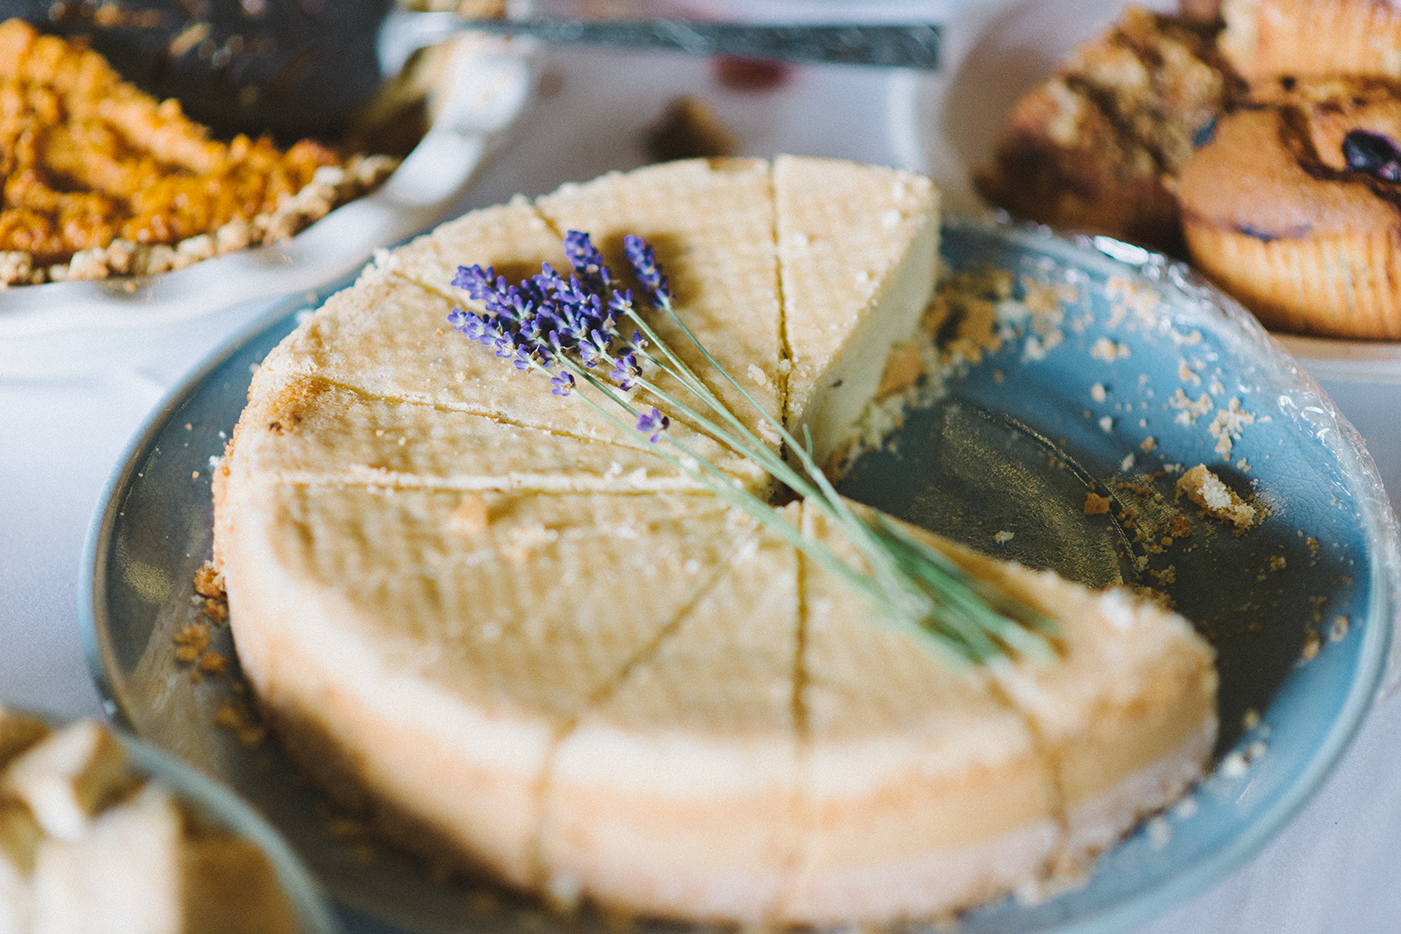 Dorris-Ranch-Springfield-Oregon-Food-Wedding-Cake-Pie-Cheesecake-Potluck-DIY-Nature-Rustic-Portland-Natural-Light-Photographer-Shelley-Marie-Photography-1.jpg